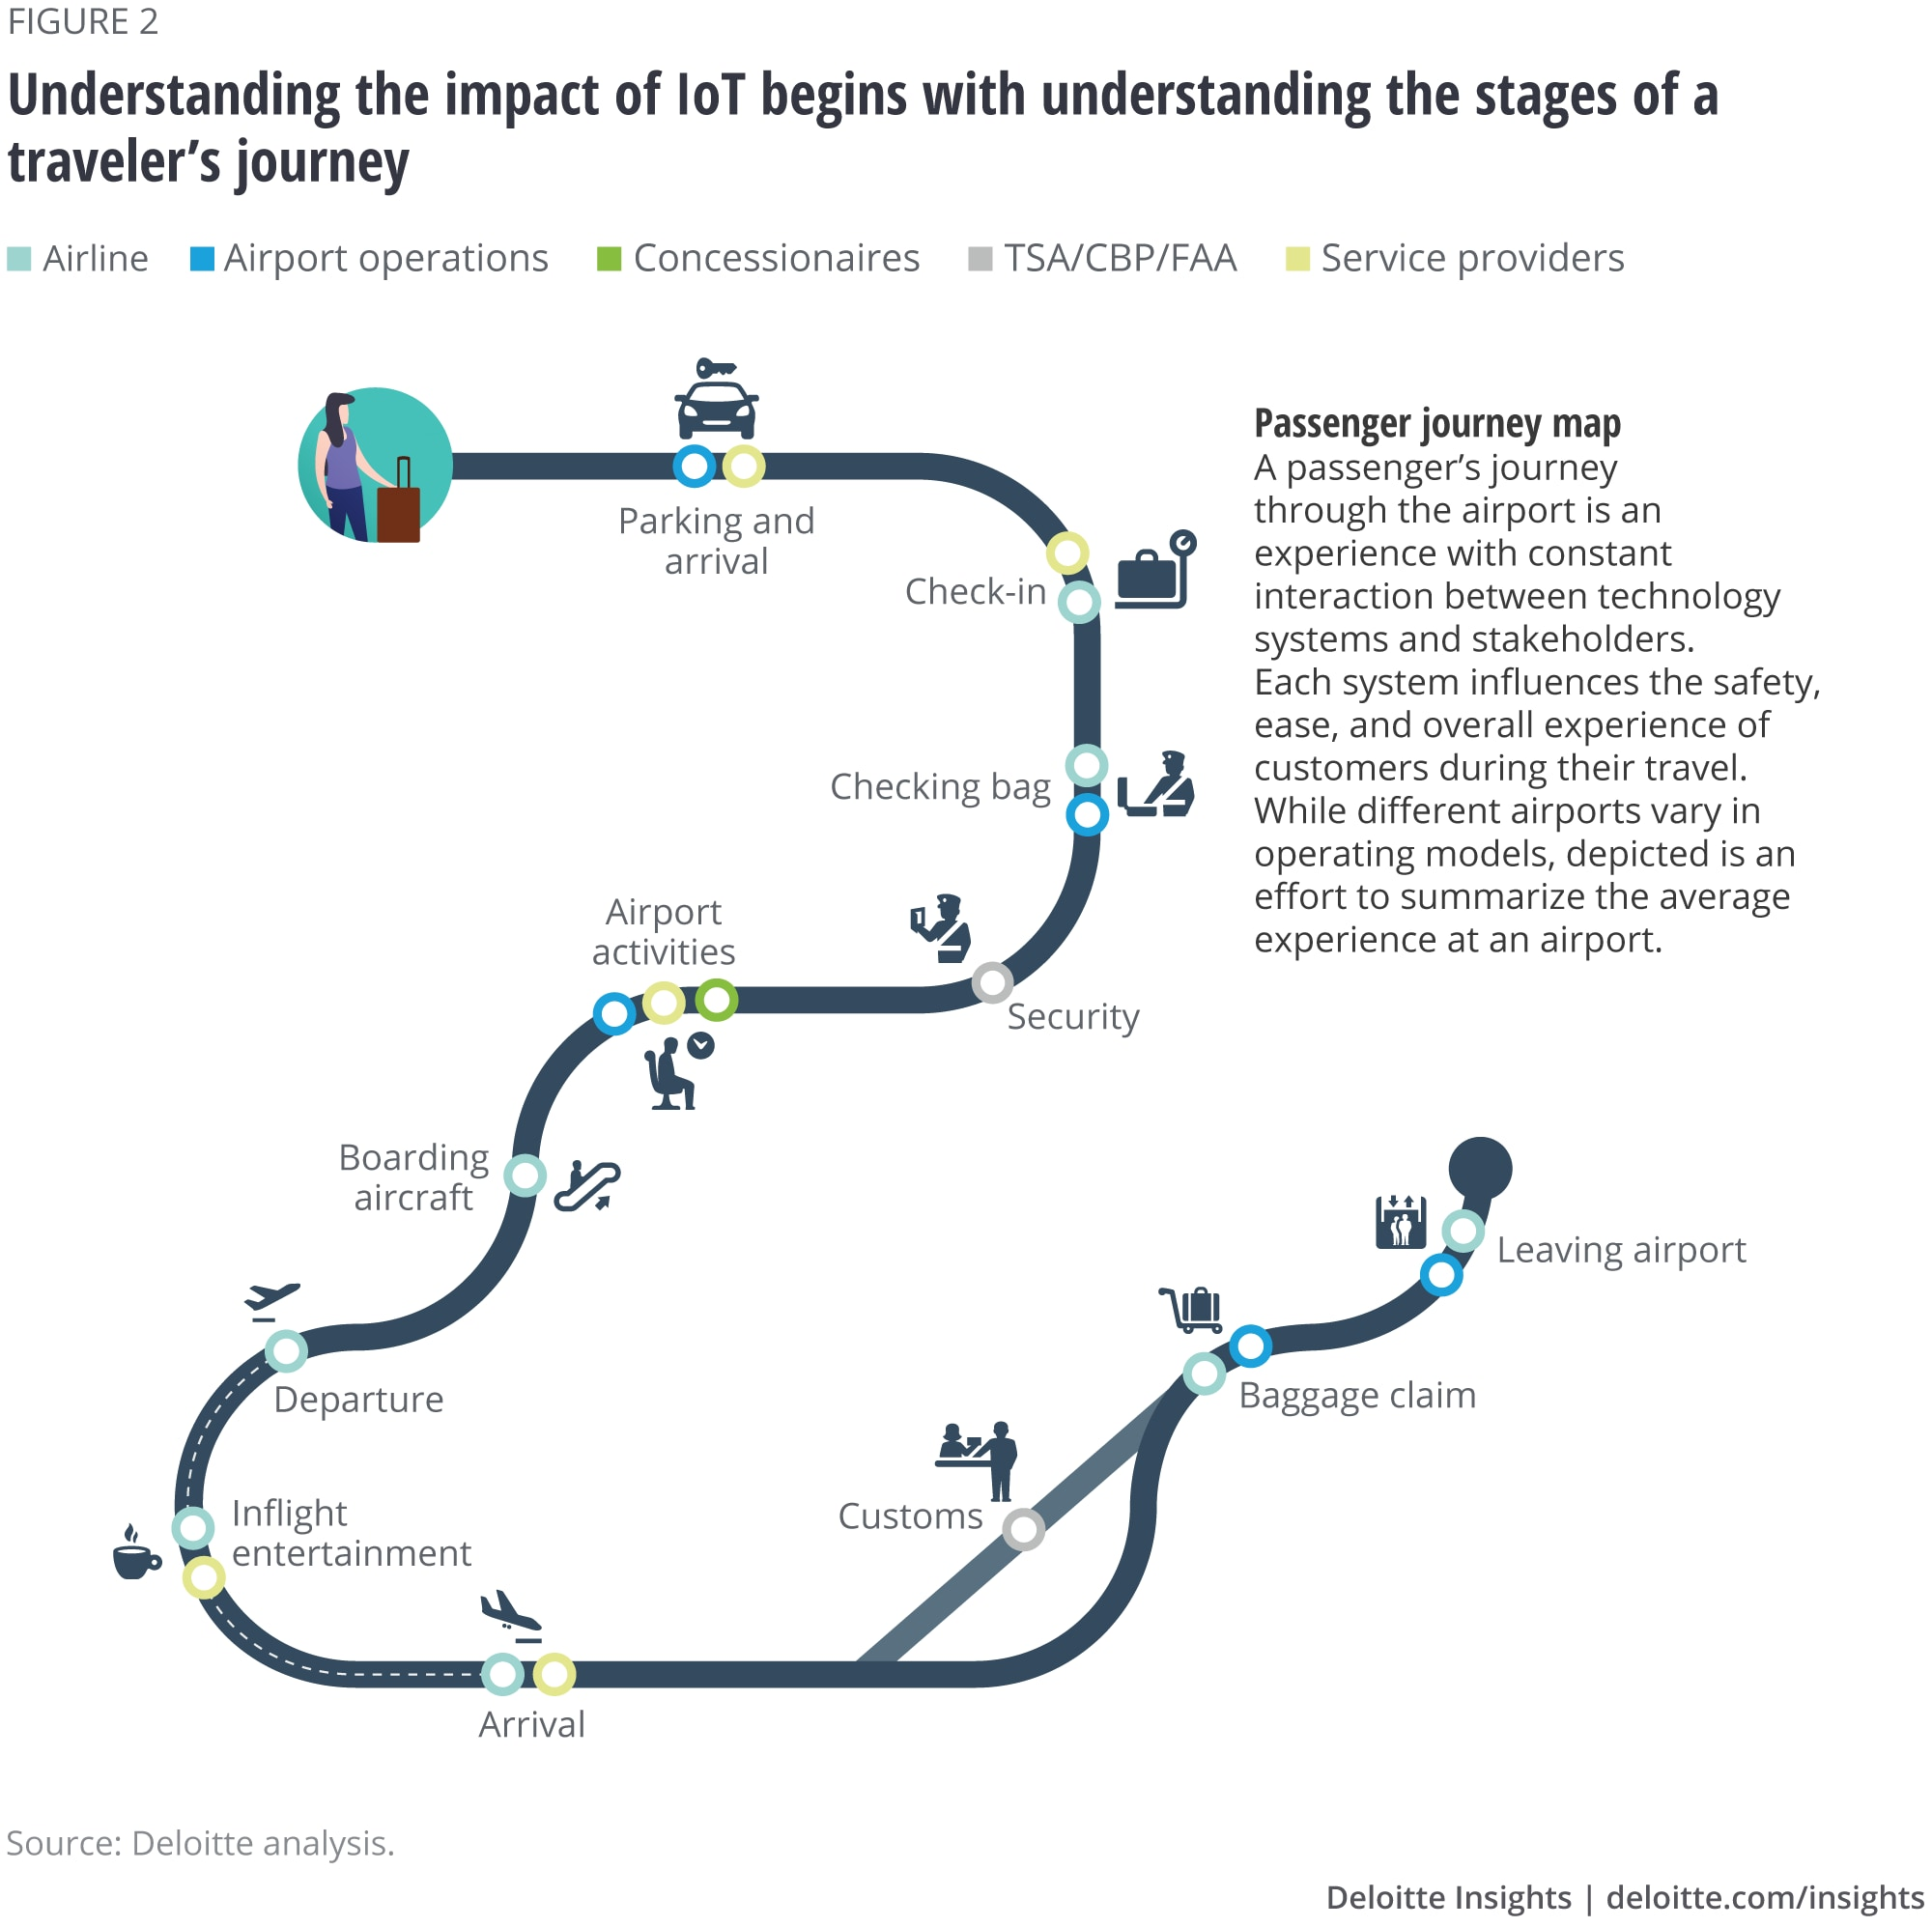 Understanding the impact of IoT begins with understanding the stages of a traveler's journey